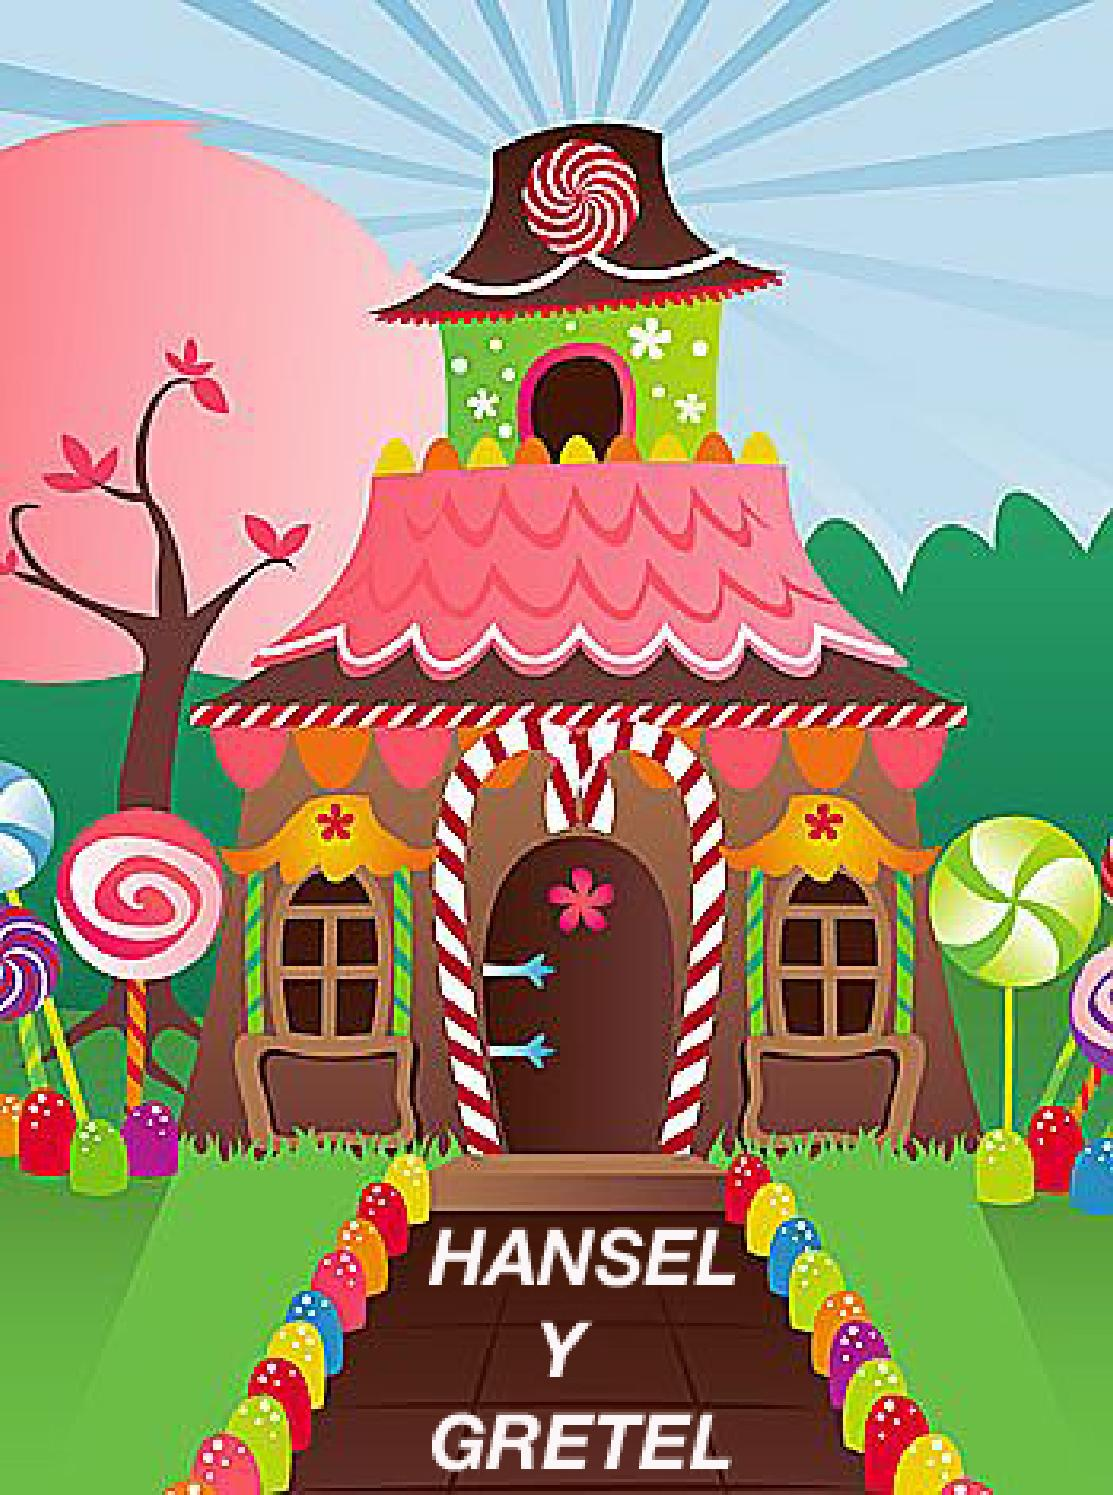 Hansel y gretel by Readdict - issuu